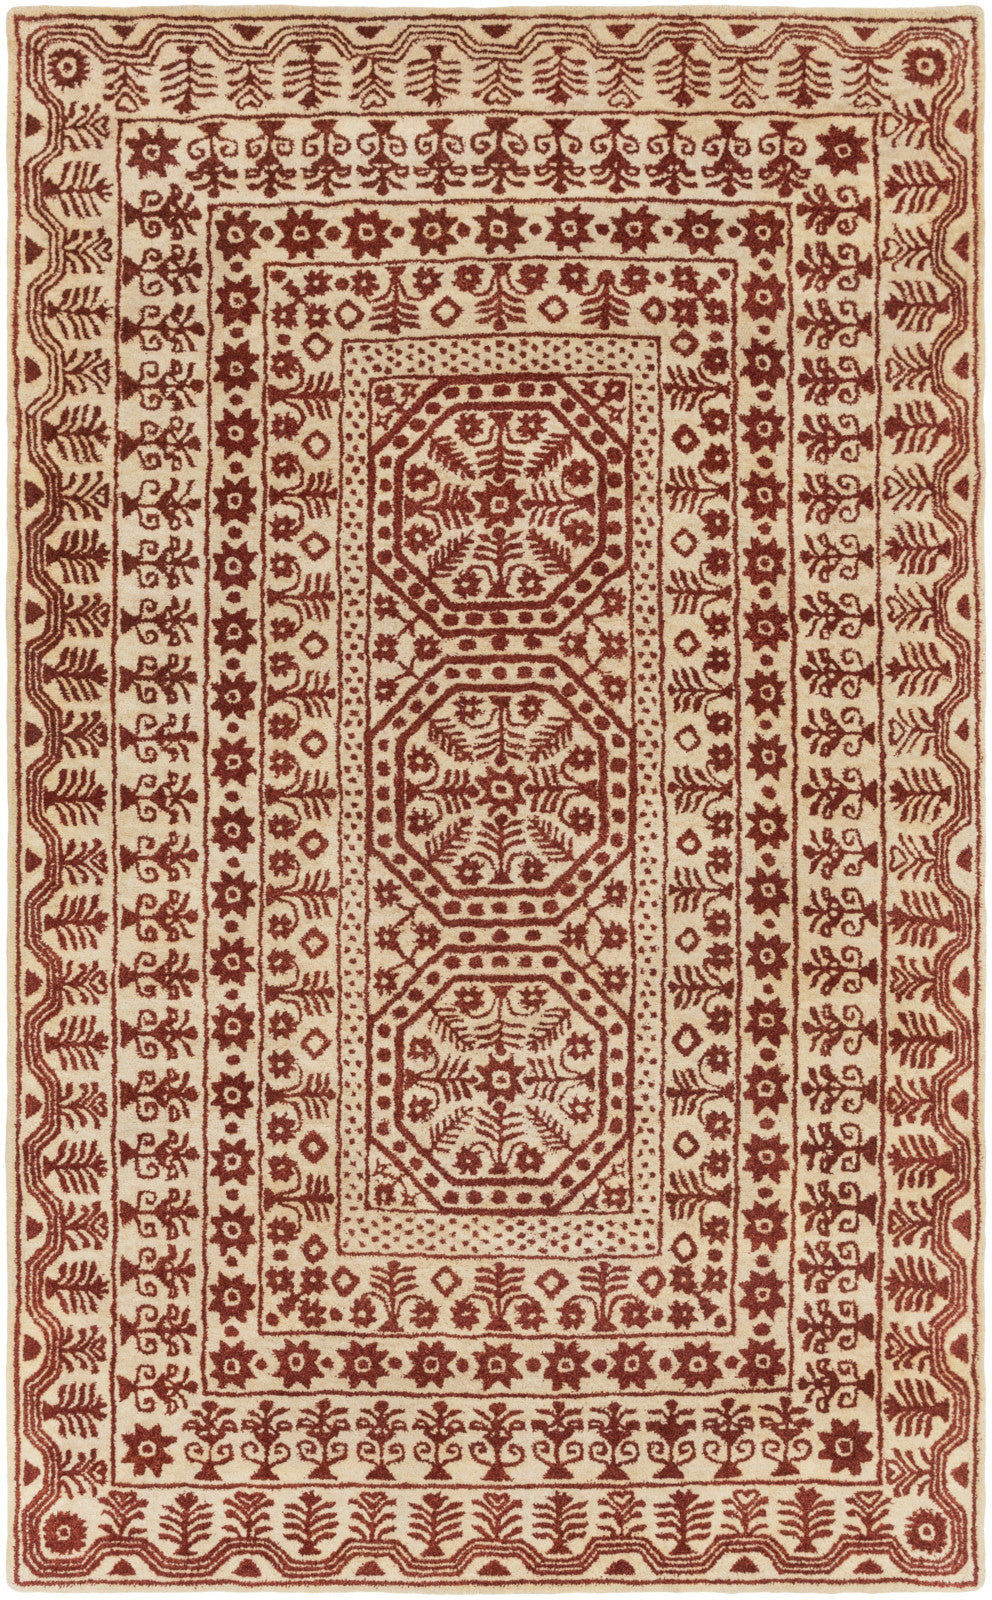 Surya SMI-2156 Red Area Rug by Smithsonian